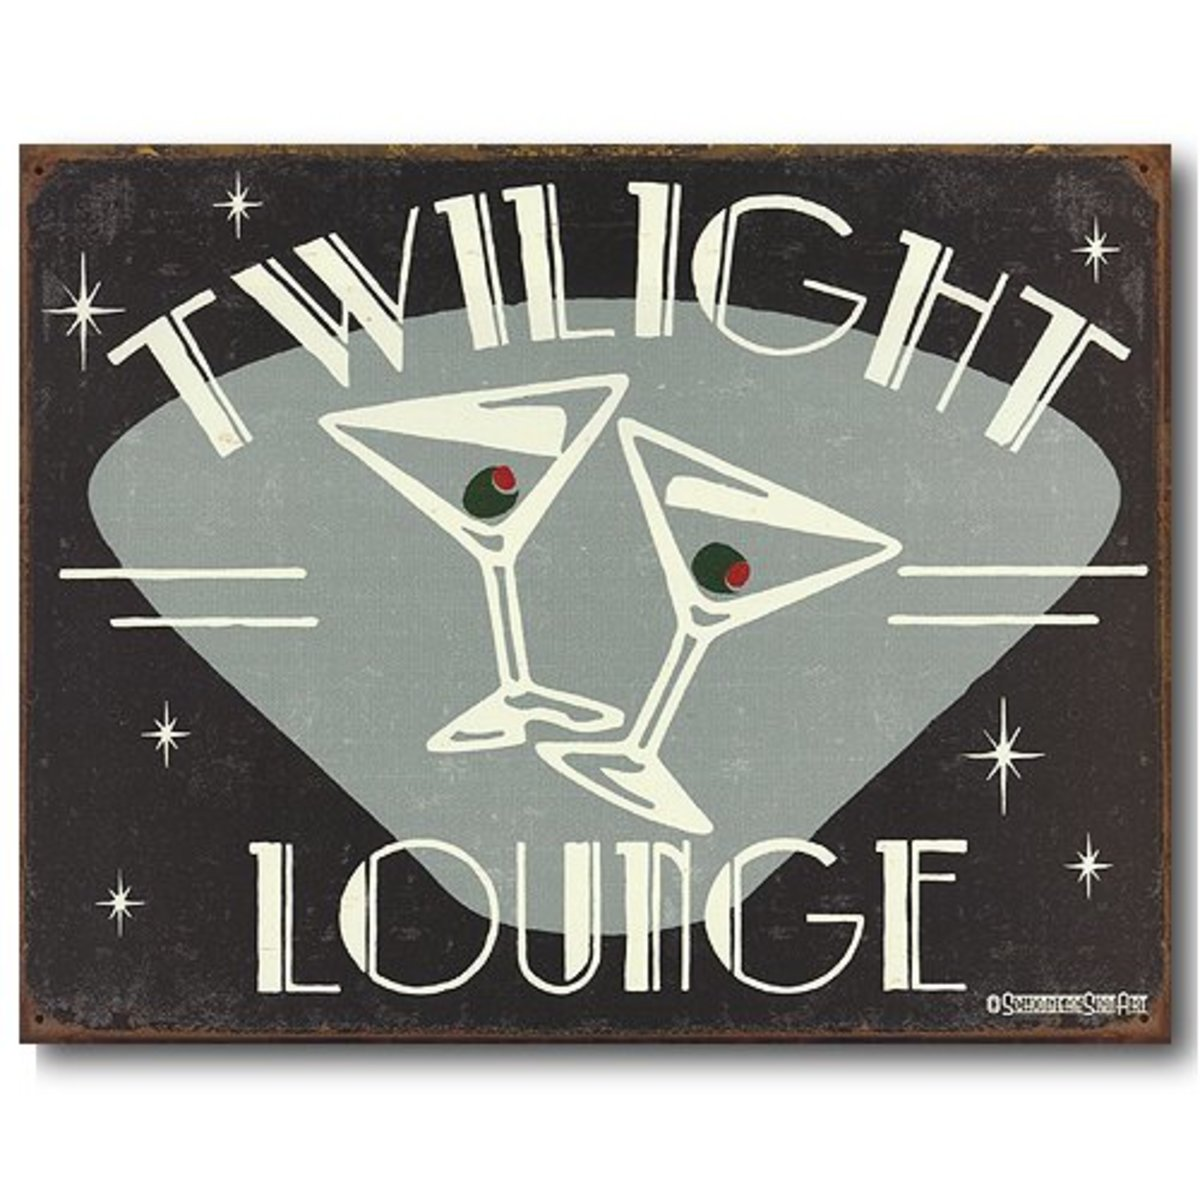 Twilight Lounge Martini Sign